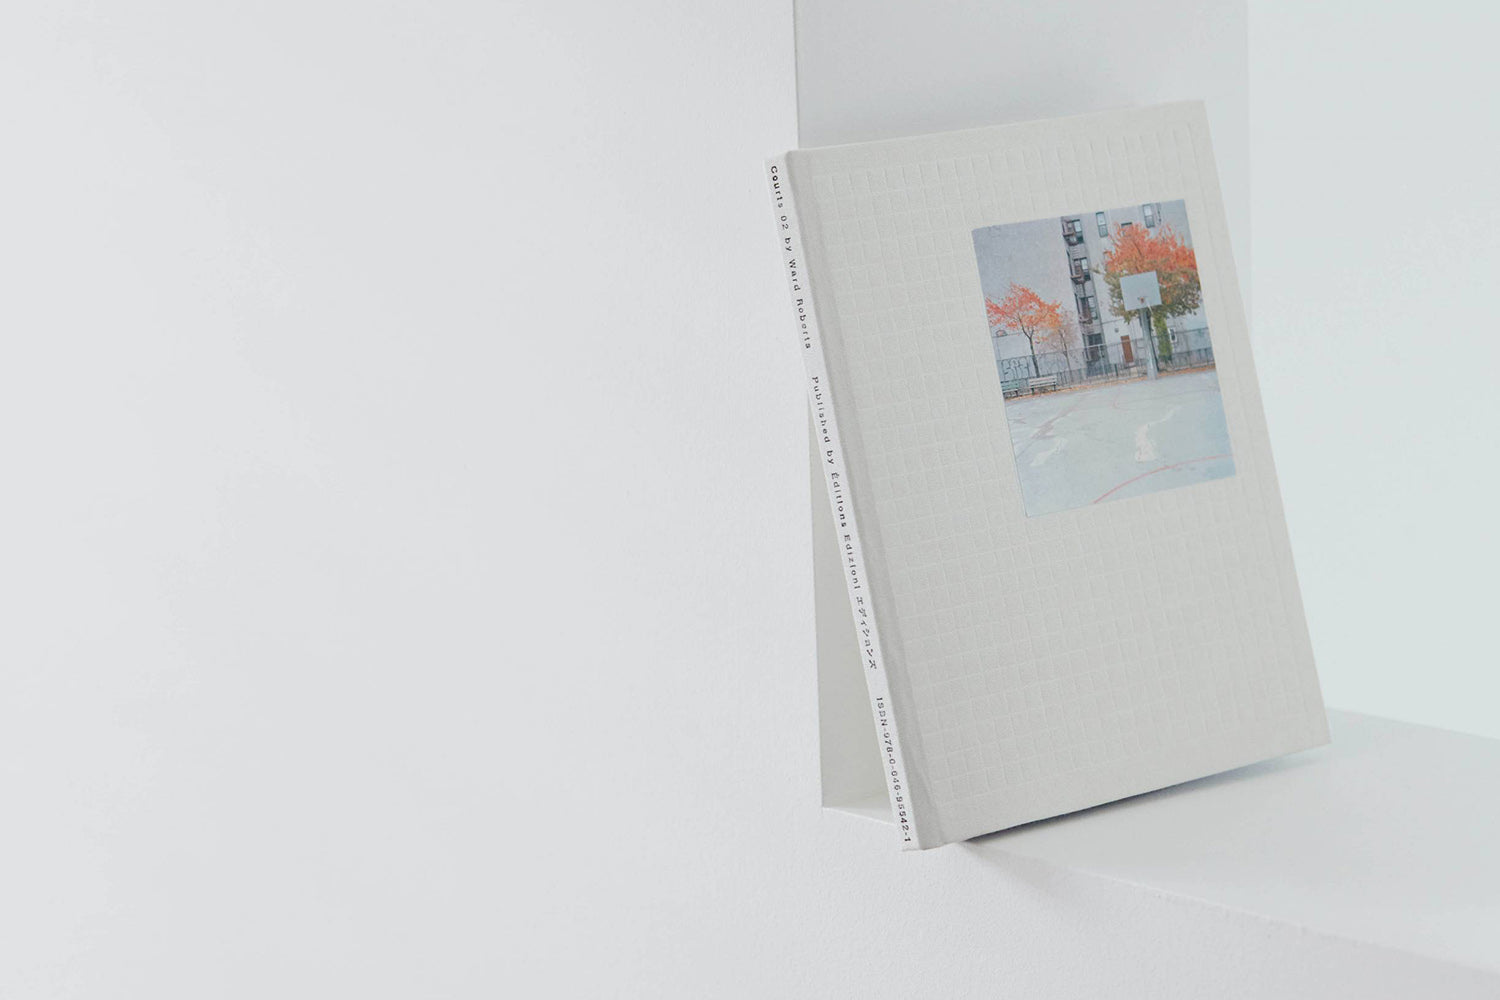 Zé Studio, Sydney based design and art direction practice. Book design and publishing for Courts 02.